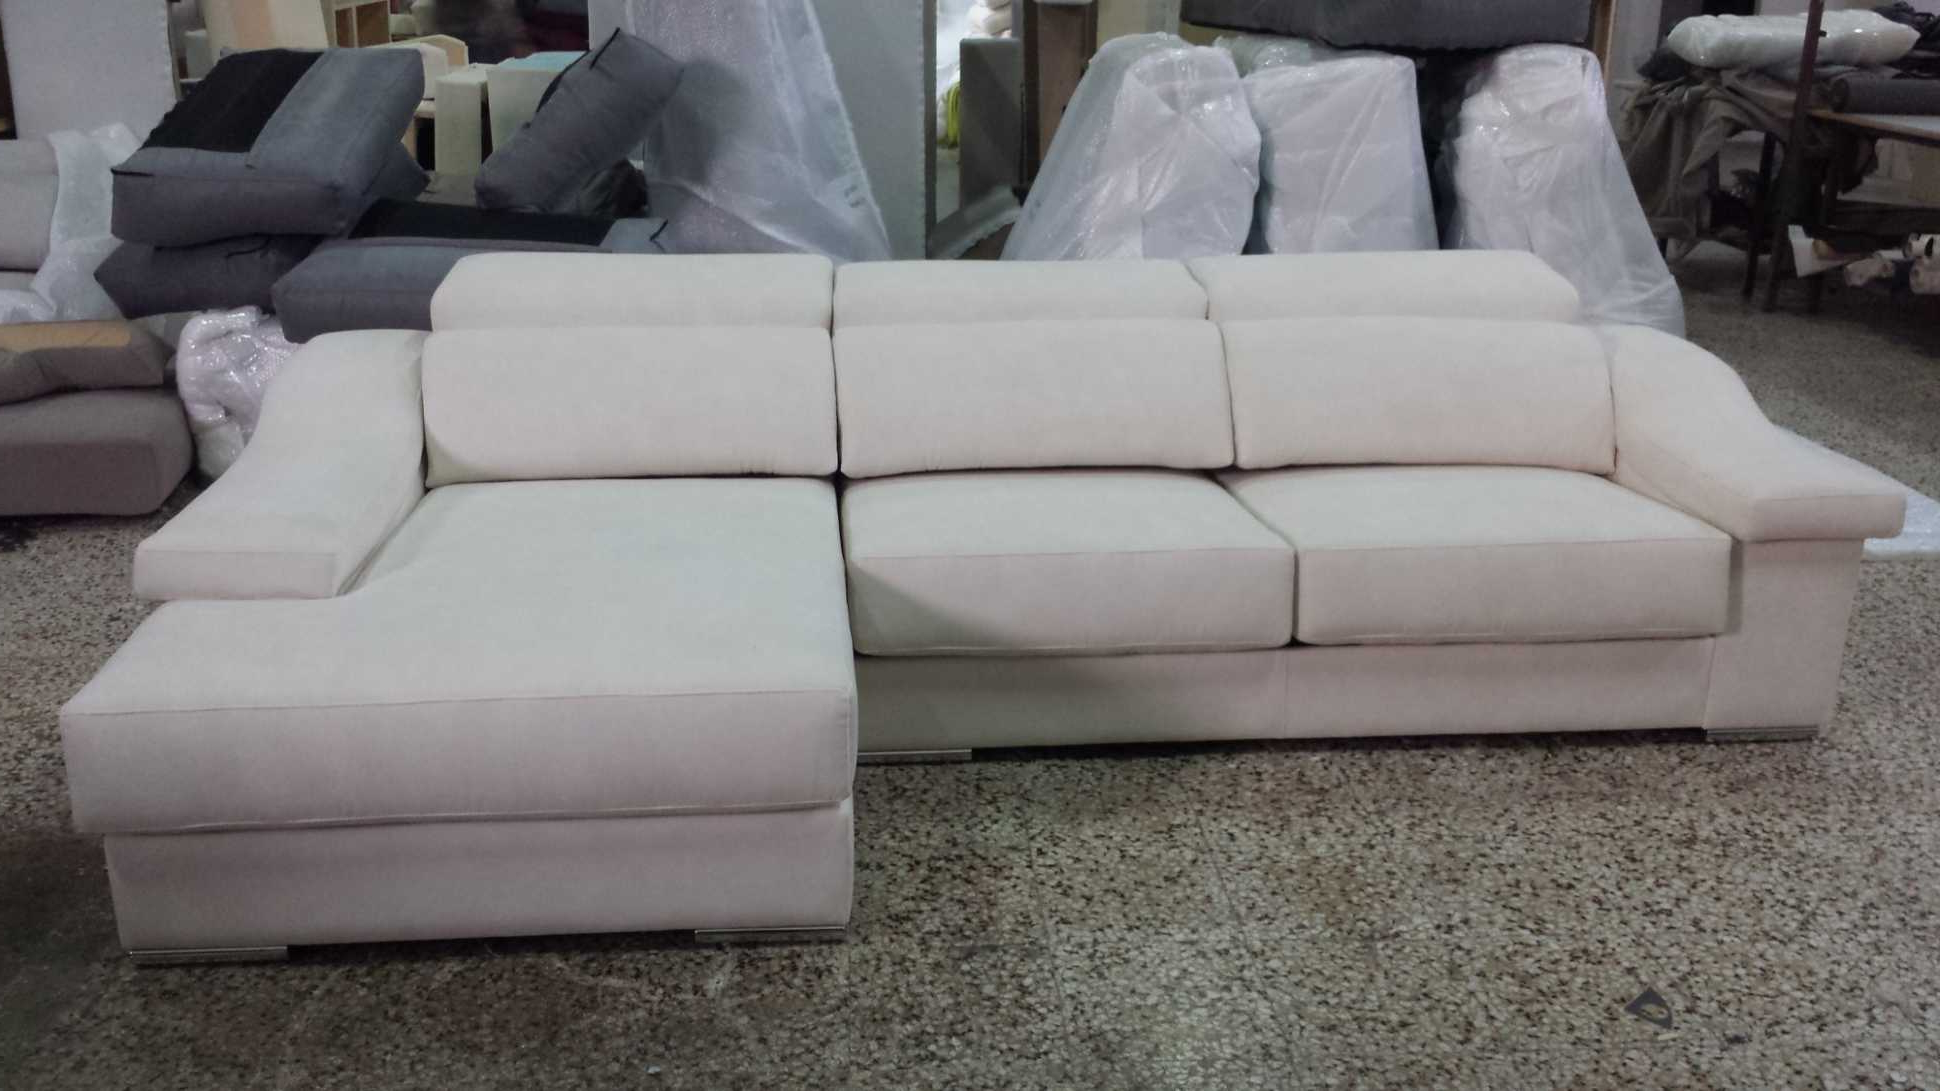 Sofas Baratos Alicante Sofas Alicante Dwdk Alicante 3 Seater Sofa Plus 2 Seater Home